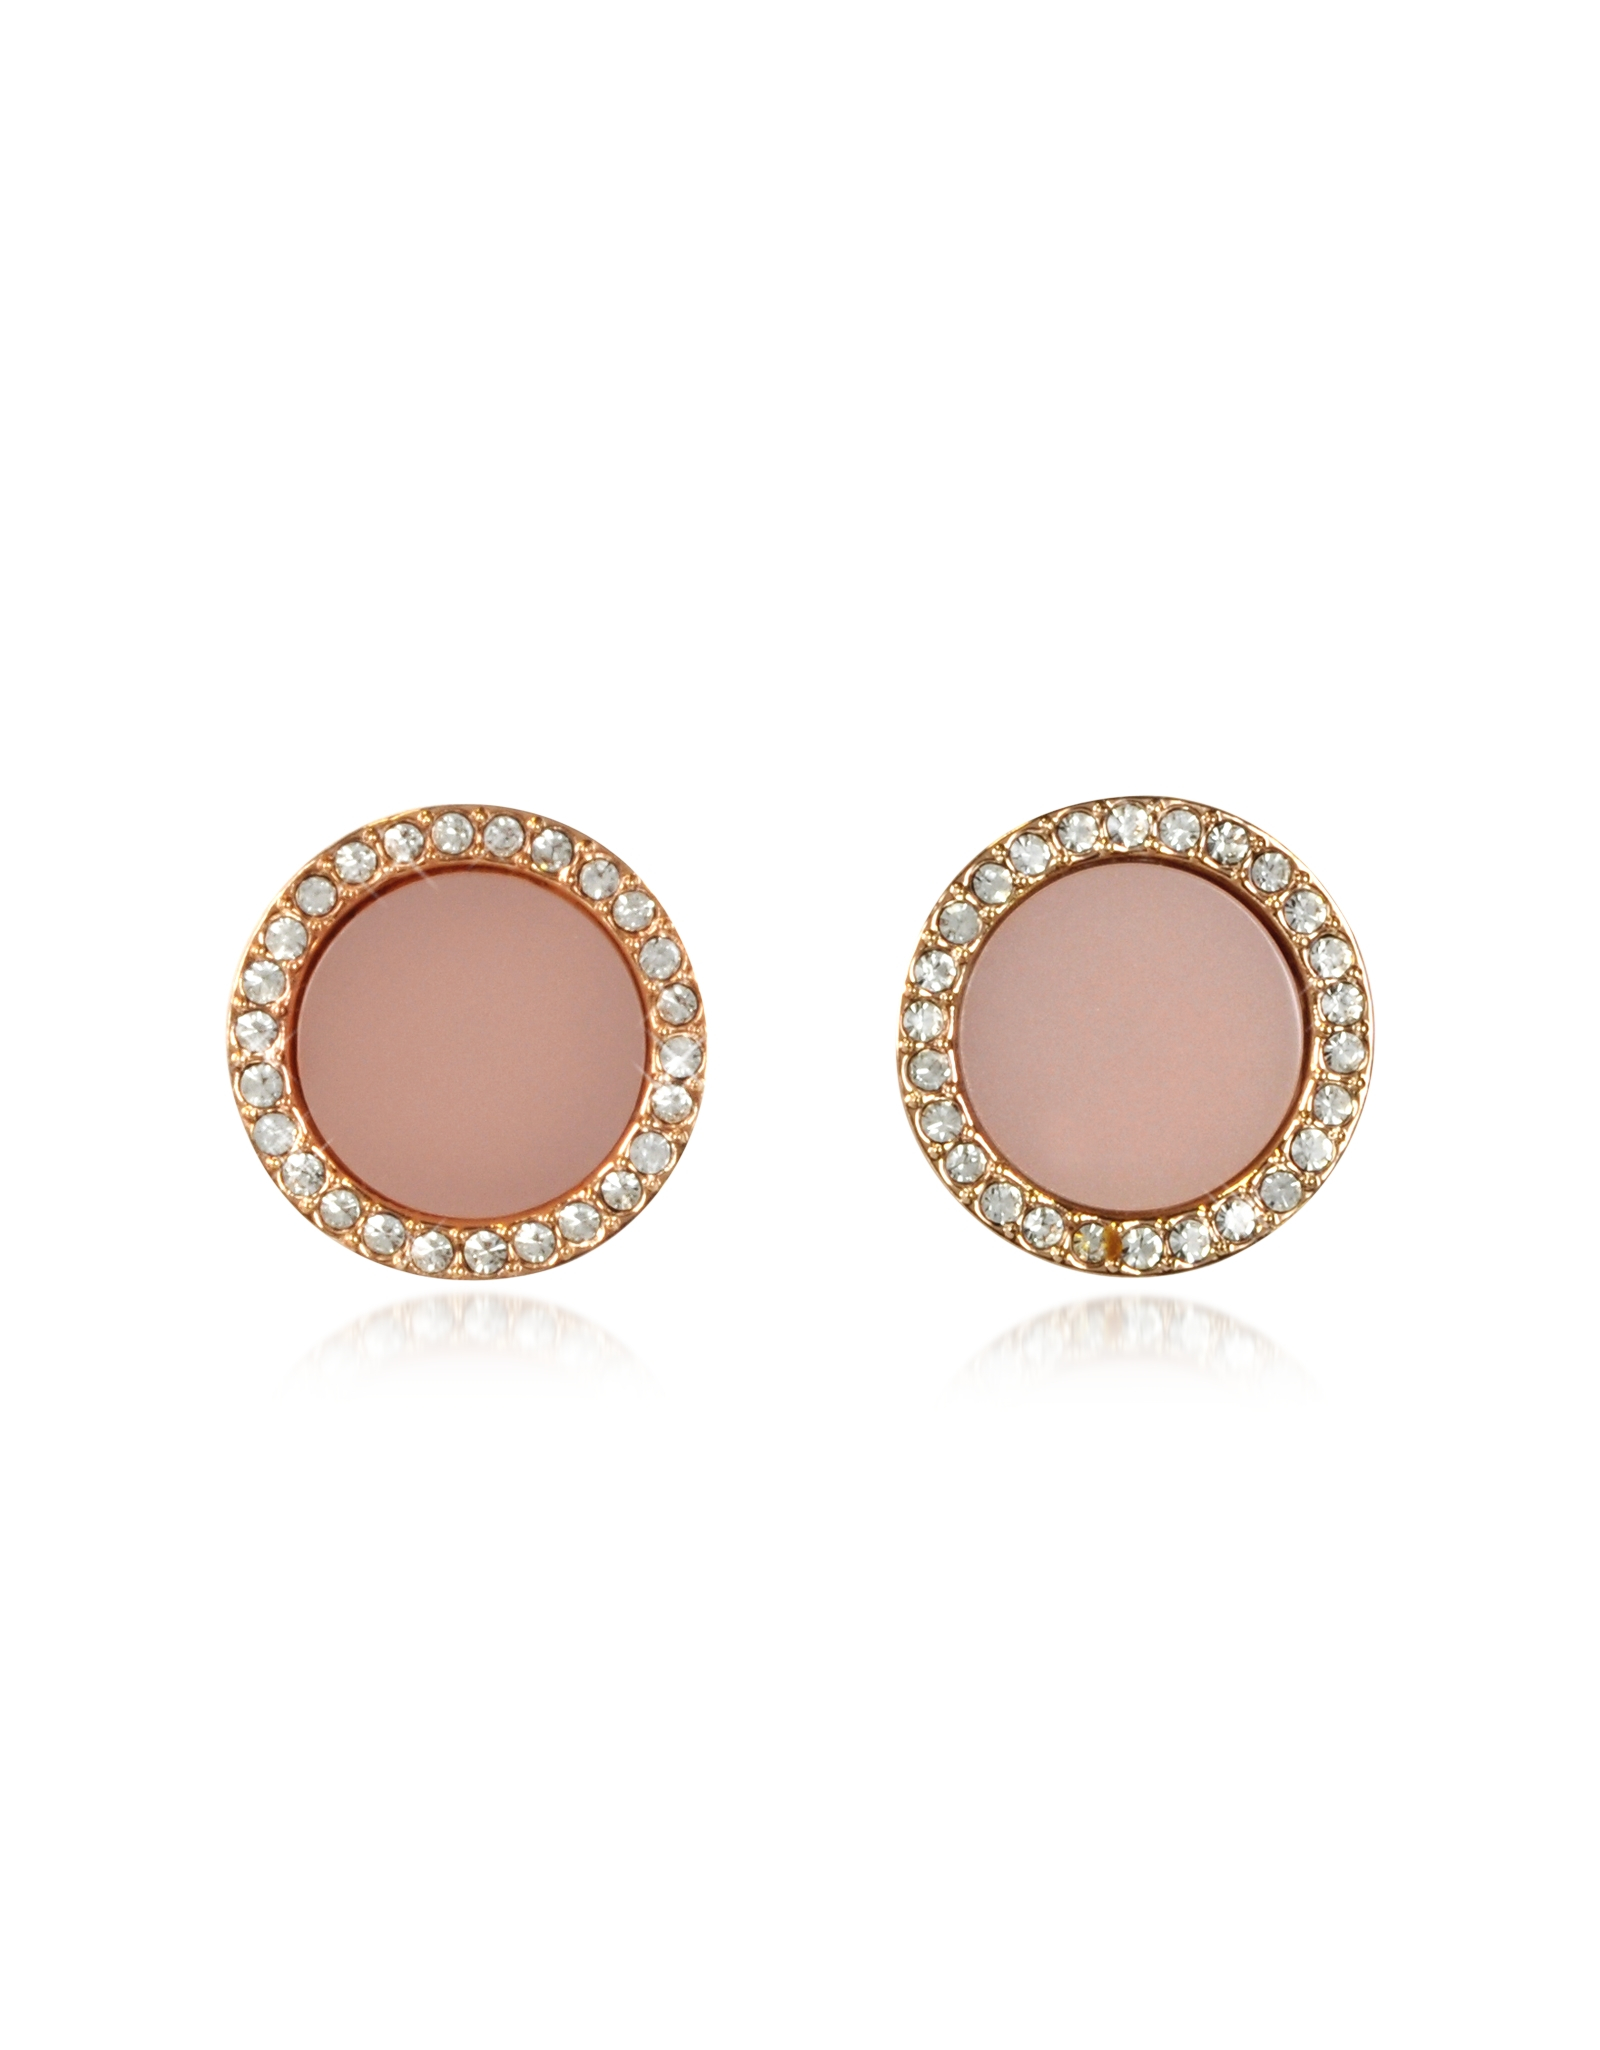 83019f5e030f8 Lyst - Michael Kors Heritage Rose Gold Stud Earrings W crystals in Pink